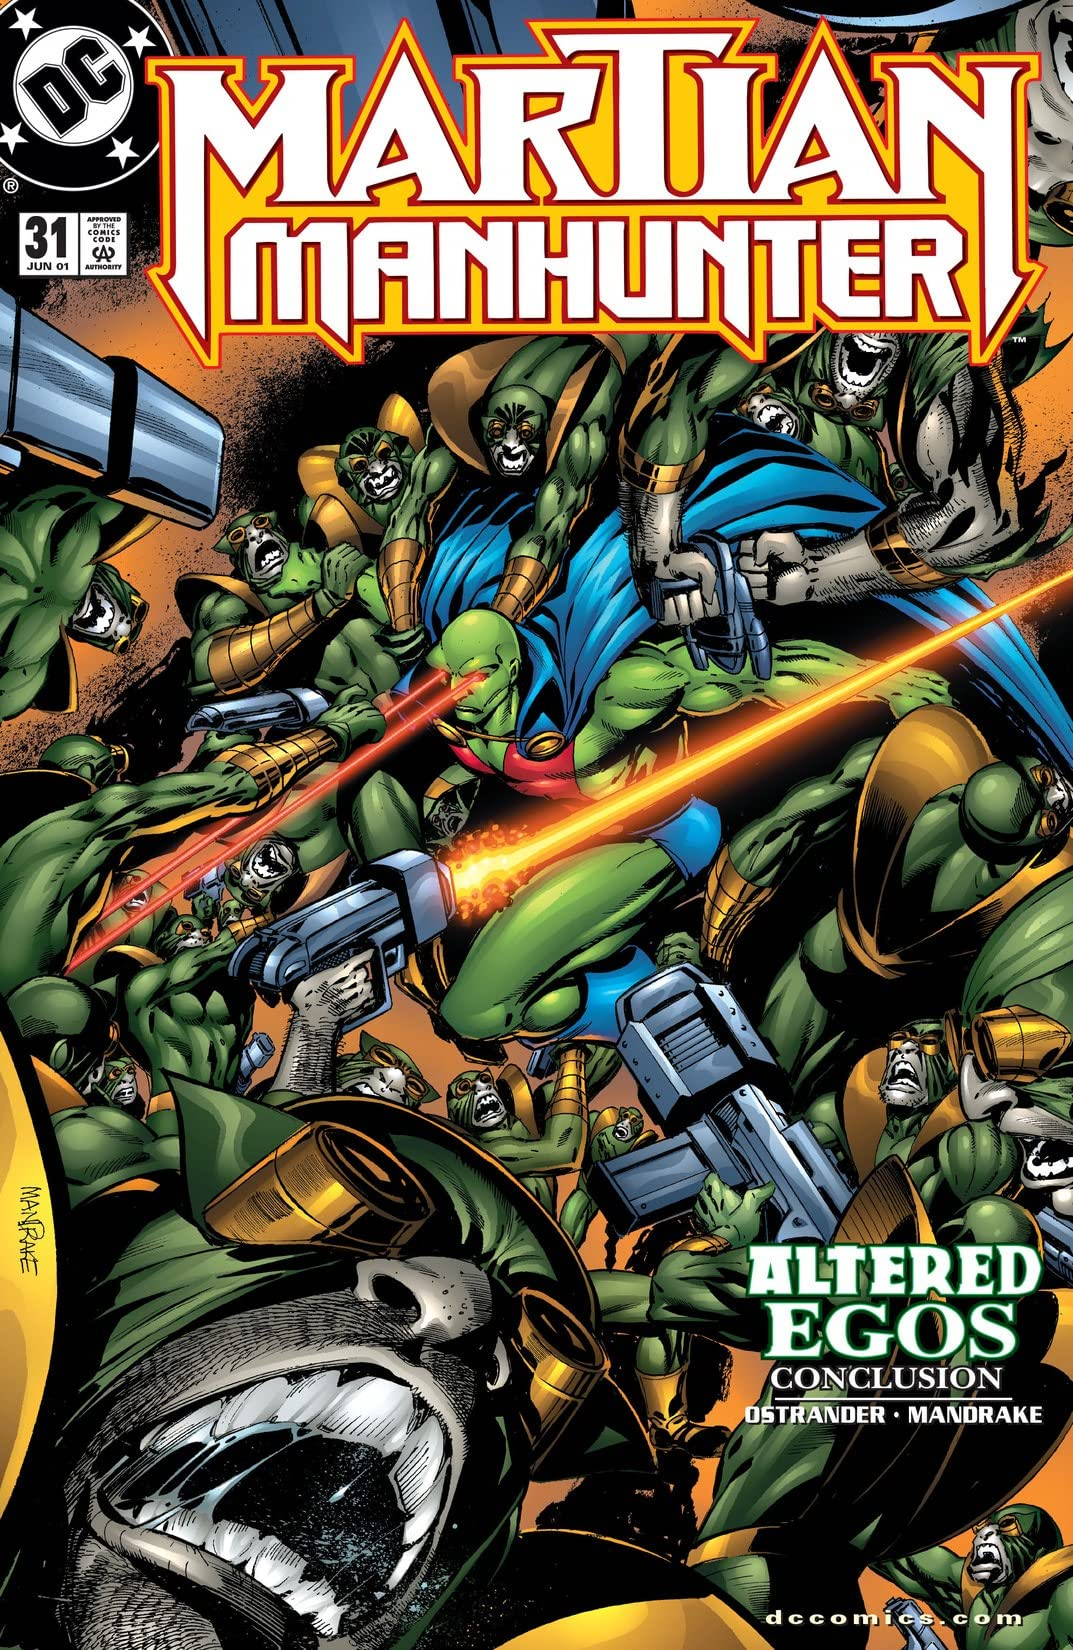 Martian Manhunter (1998-2001) #31